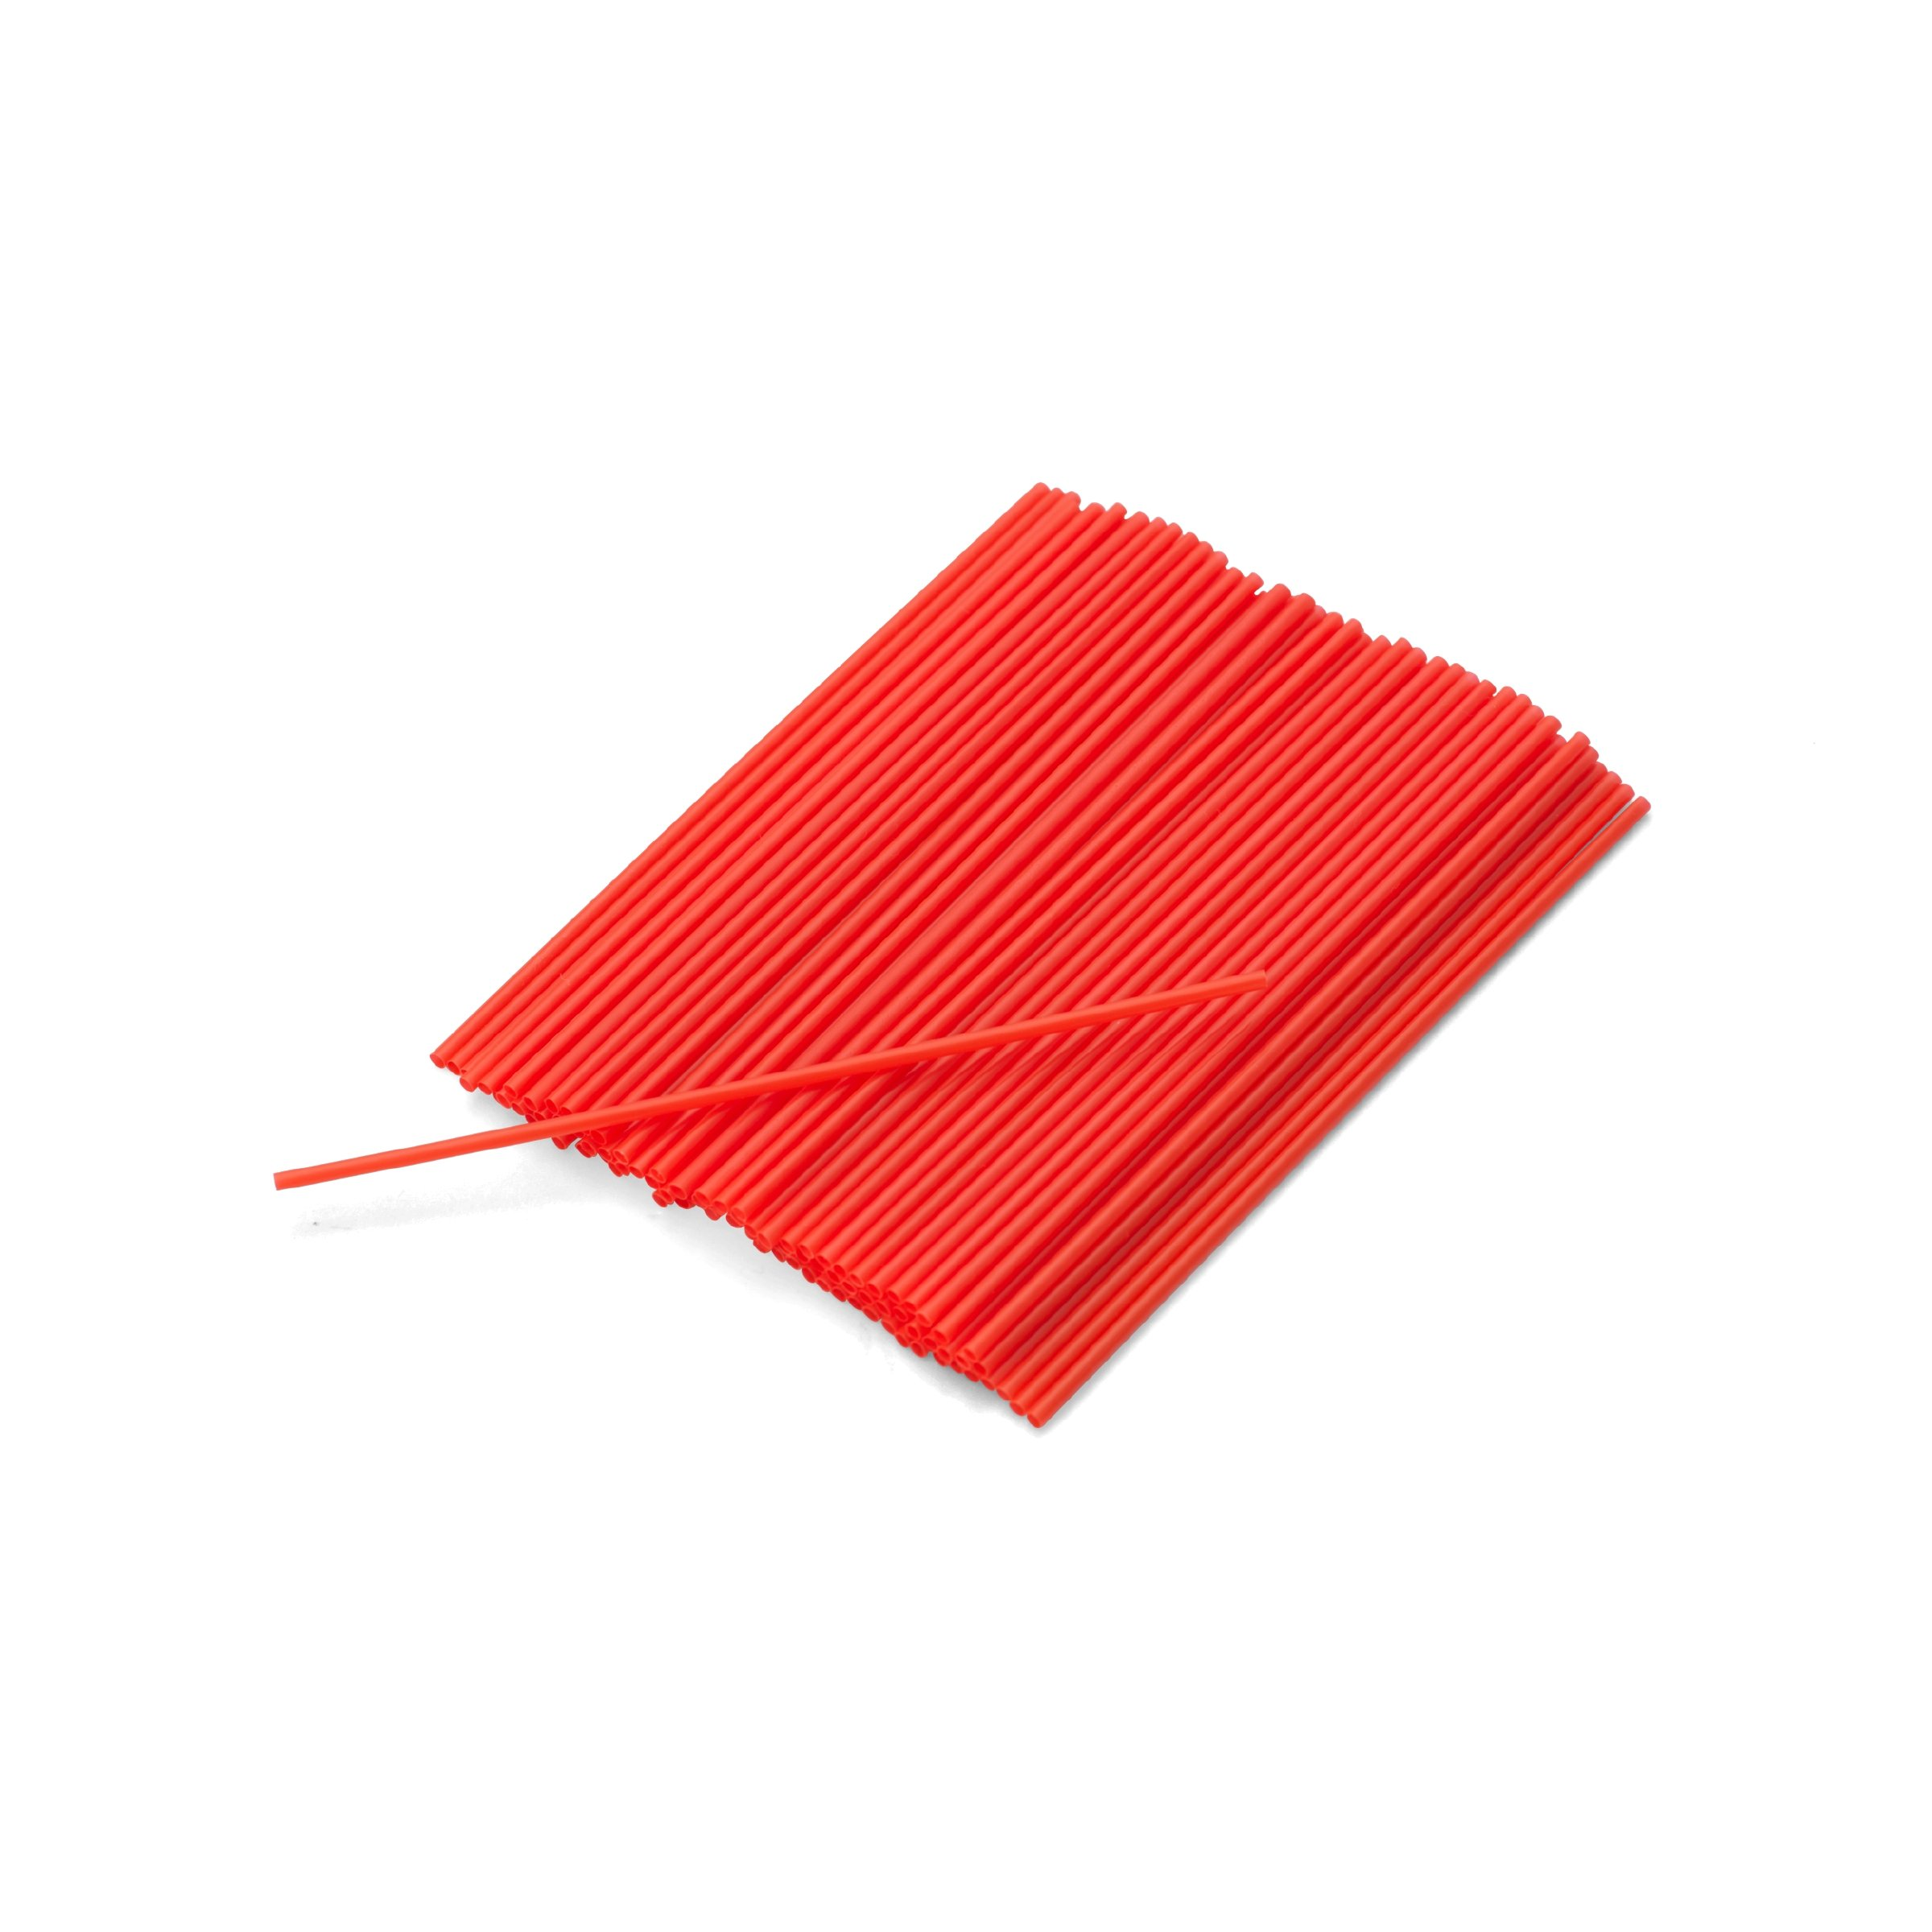 Kizmos Coffee Stirrers (Red, 100 Count)